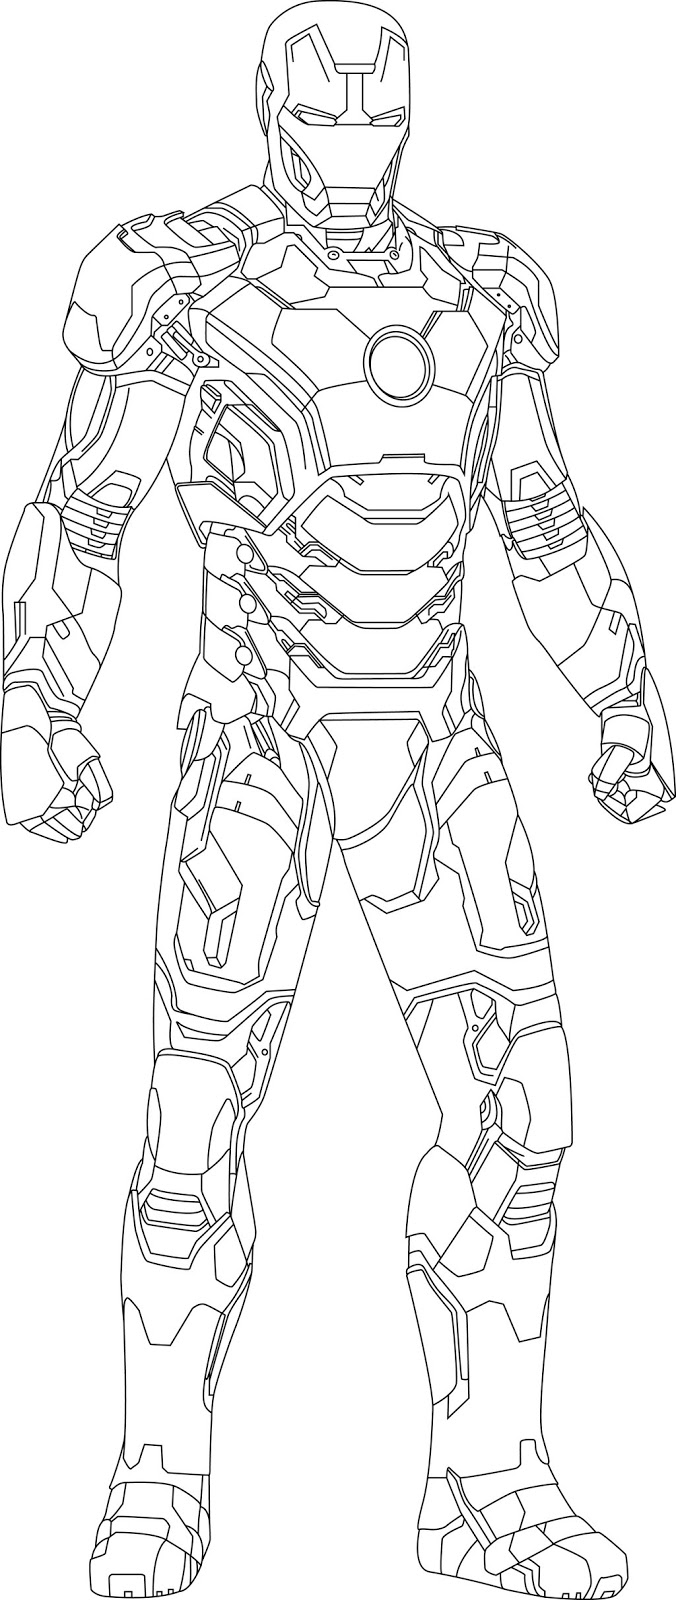 ironman coloring free printable iron man coloring pages for kids coloring ironman